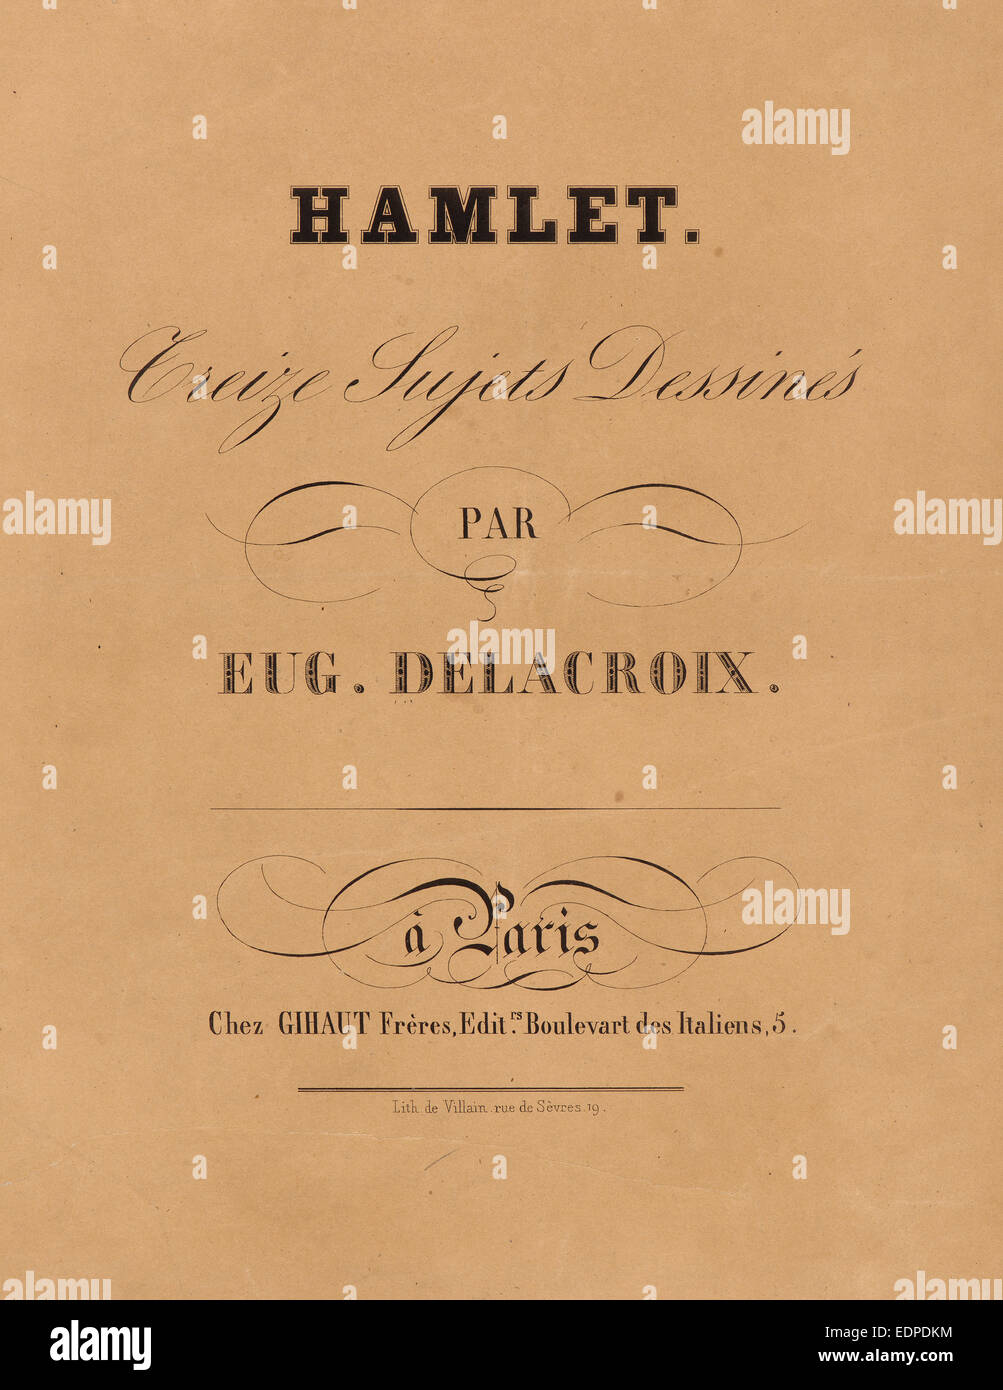 Eugène Delacroix (French, 1798 - 1863). Hamlet: title page, 1834-1843. From Hamlet. Lithographs - Stock Image